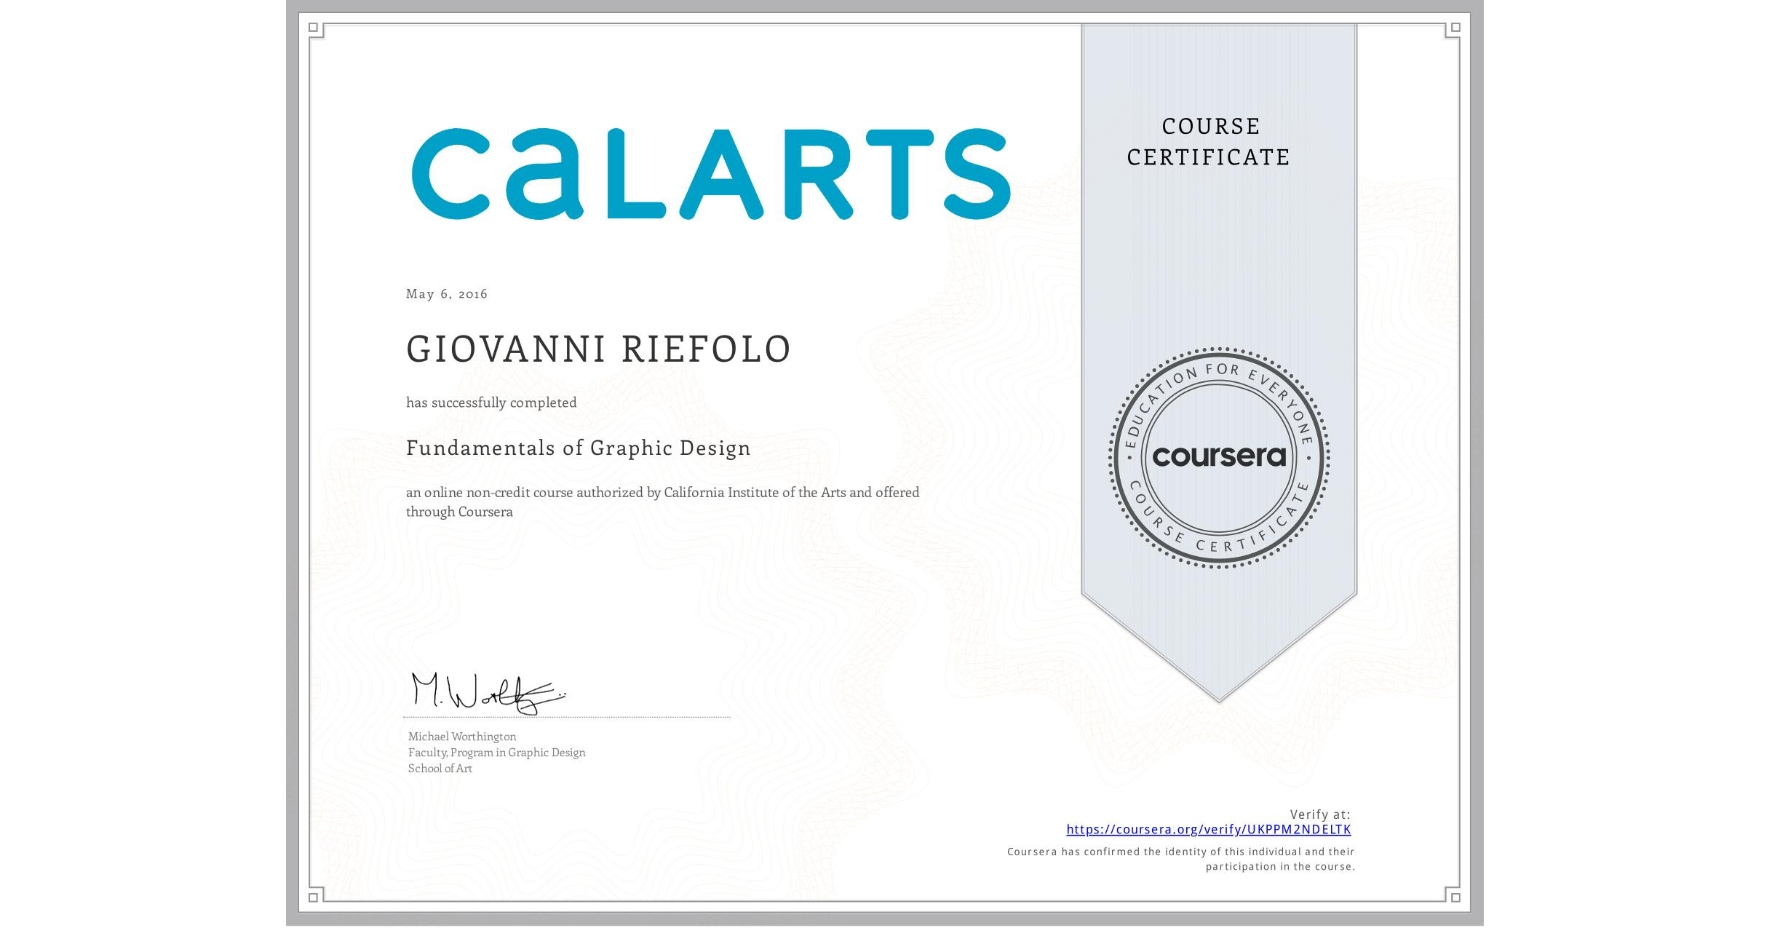 View certificate for GIOVANNI RIEFOLO, Fundamentals of Graphic Design, an online non-credit course authorized by California Institute of the Arts and offered through Coursera